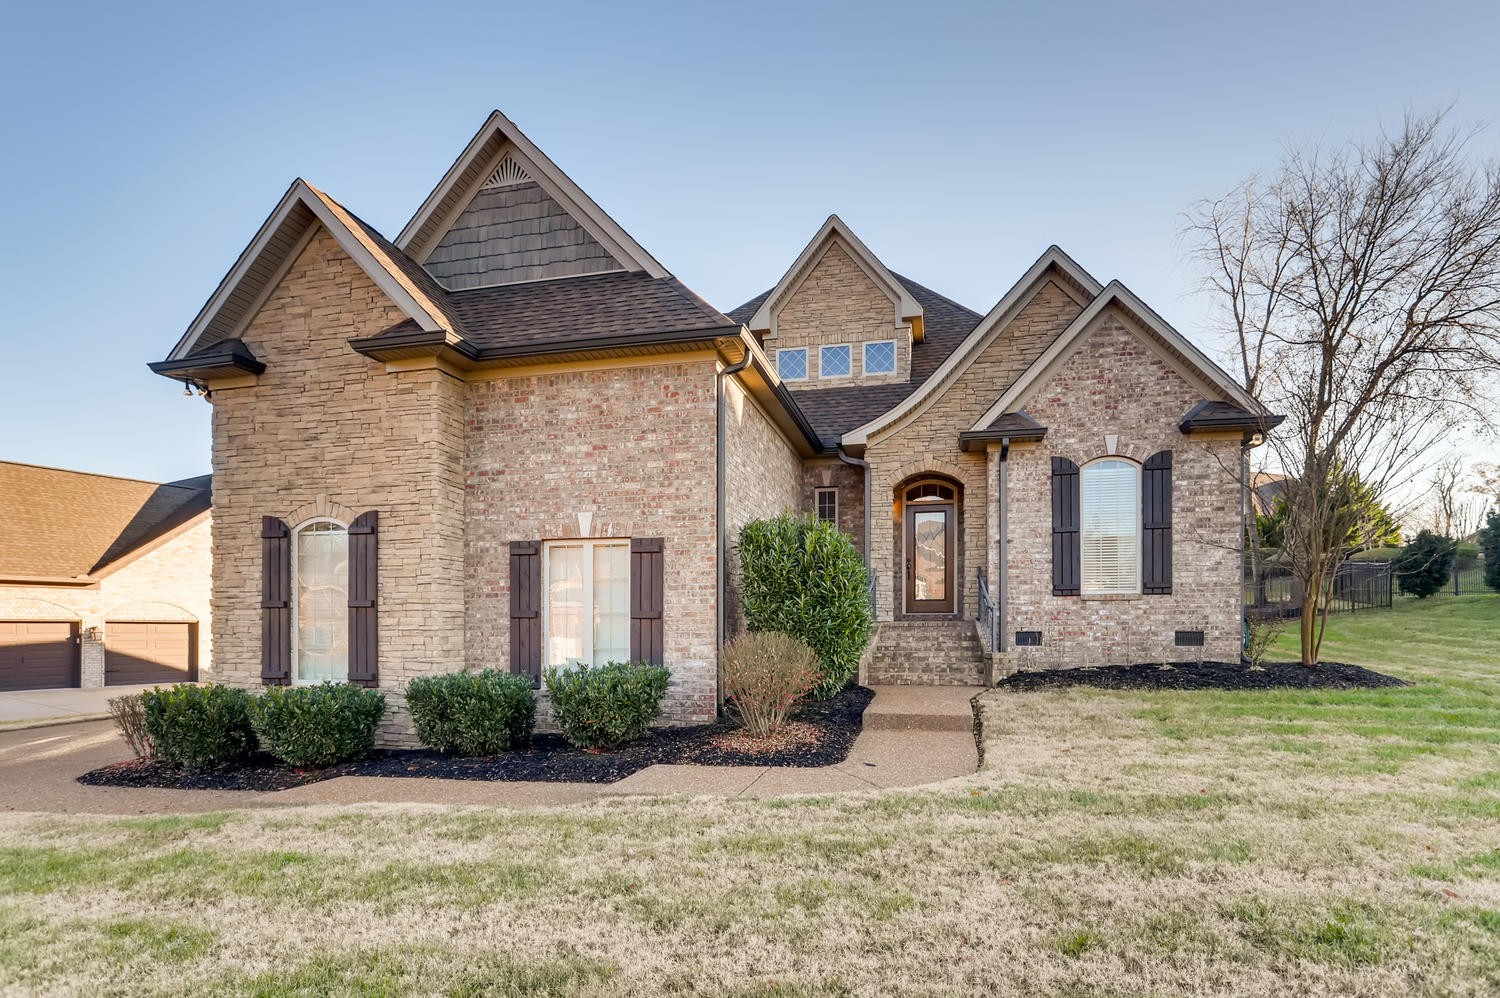 1545 Stokley Ln, Old Hickory, TN 37138 - Old Hickory, TN real estate listing